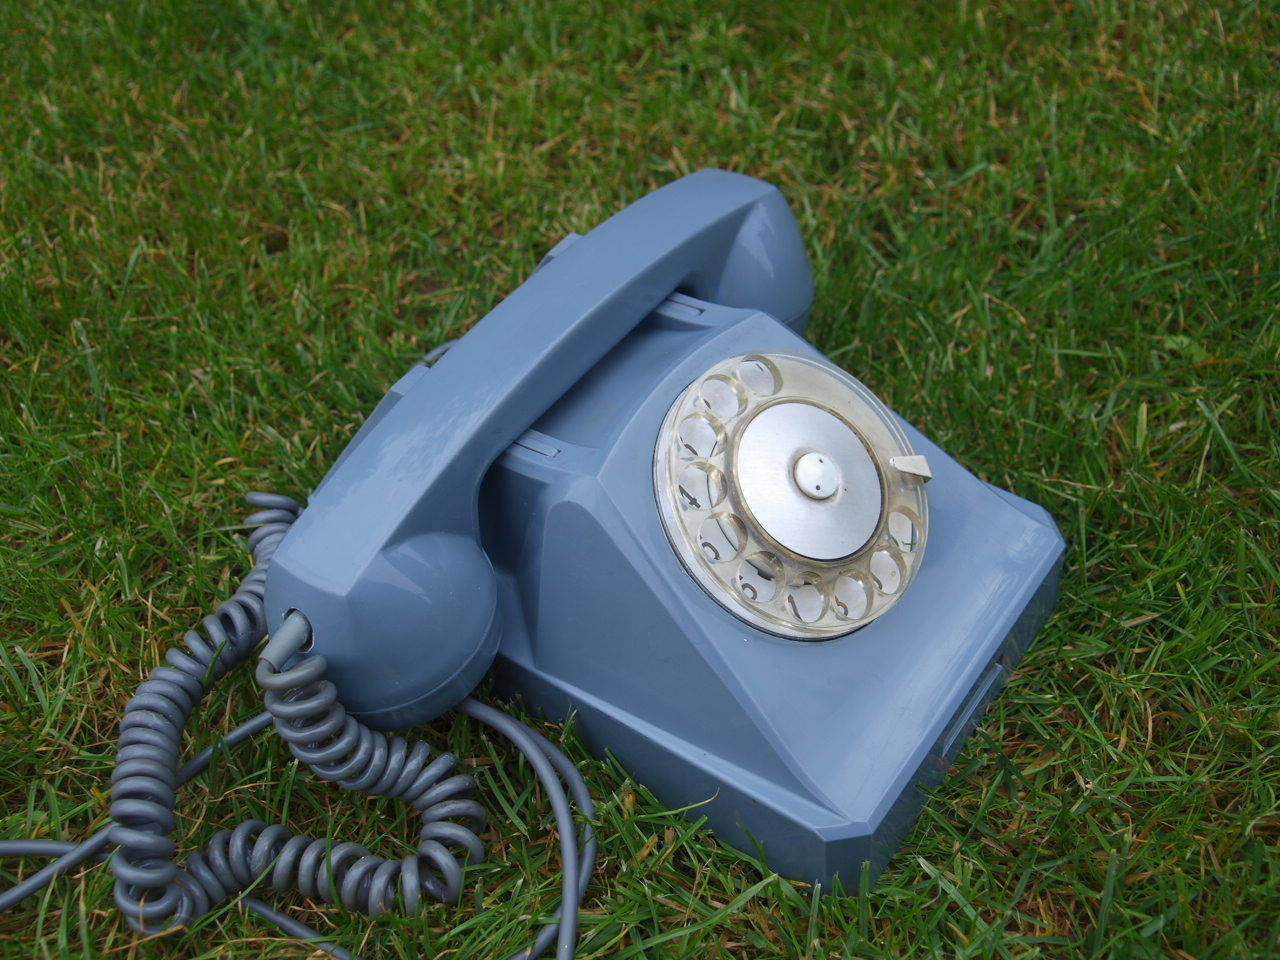 ANTIQUE RARE USSR SOVIET RUSSIAN ROTARY DIAL PHONE GREY COLOR 1970